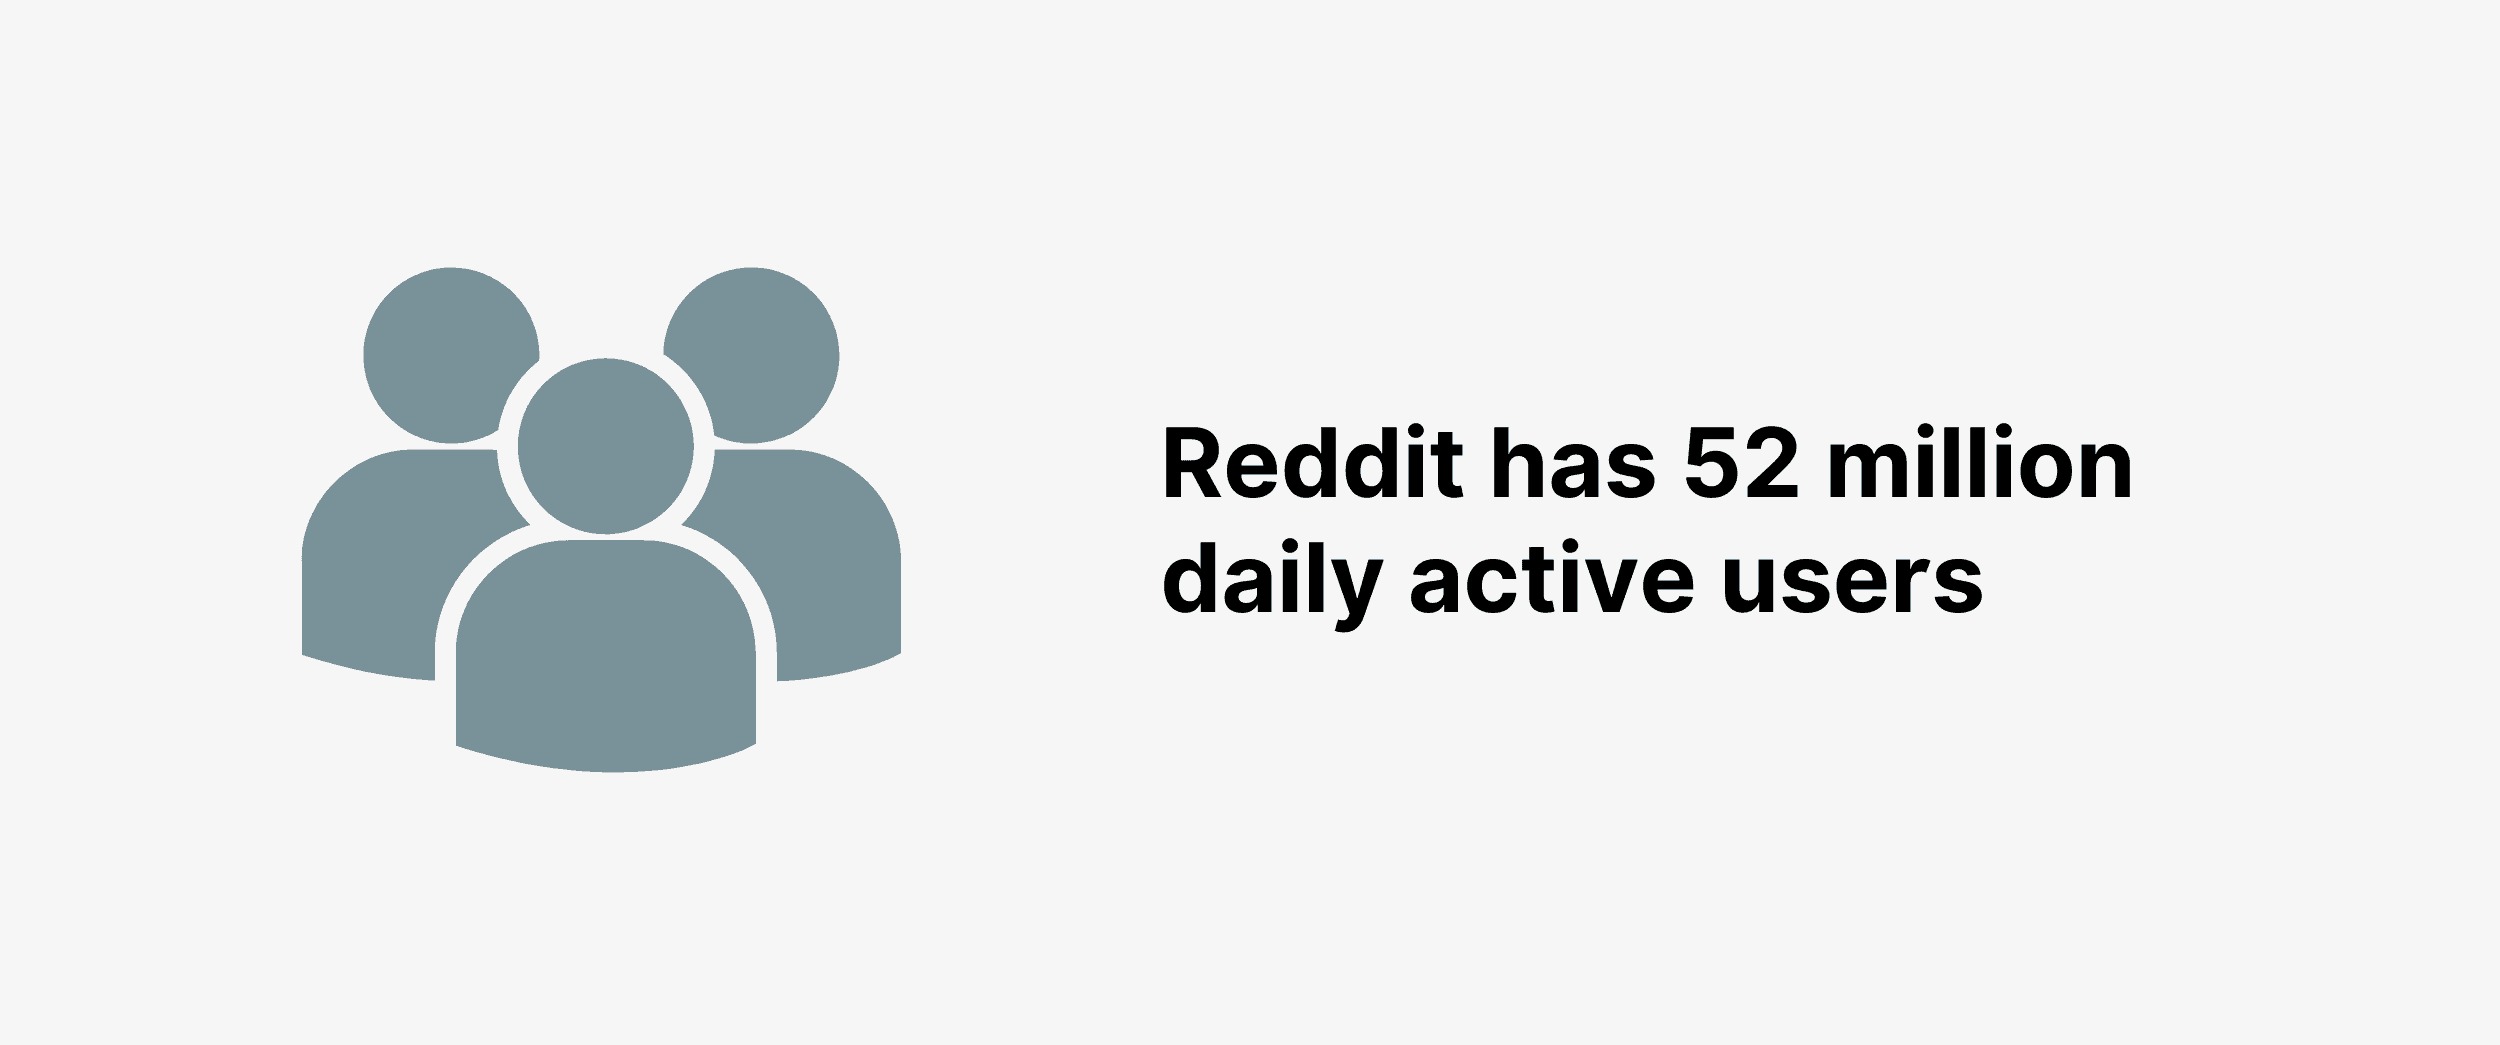 Reddit has 52 million daily active users